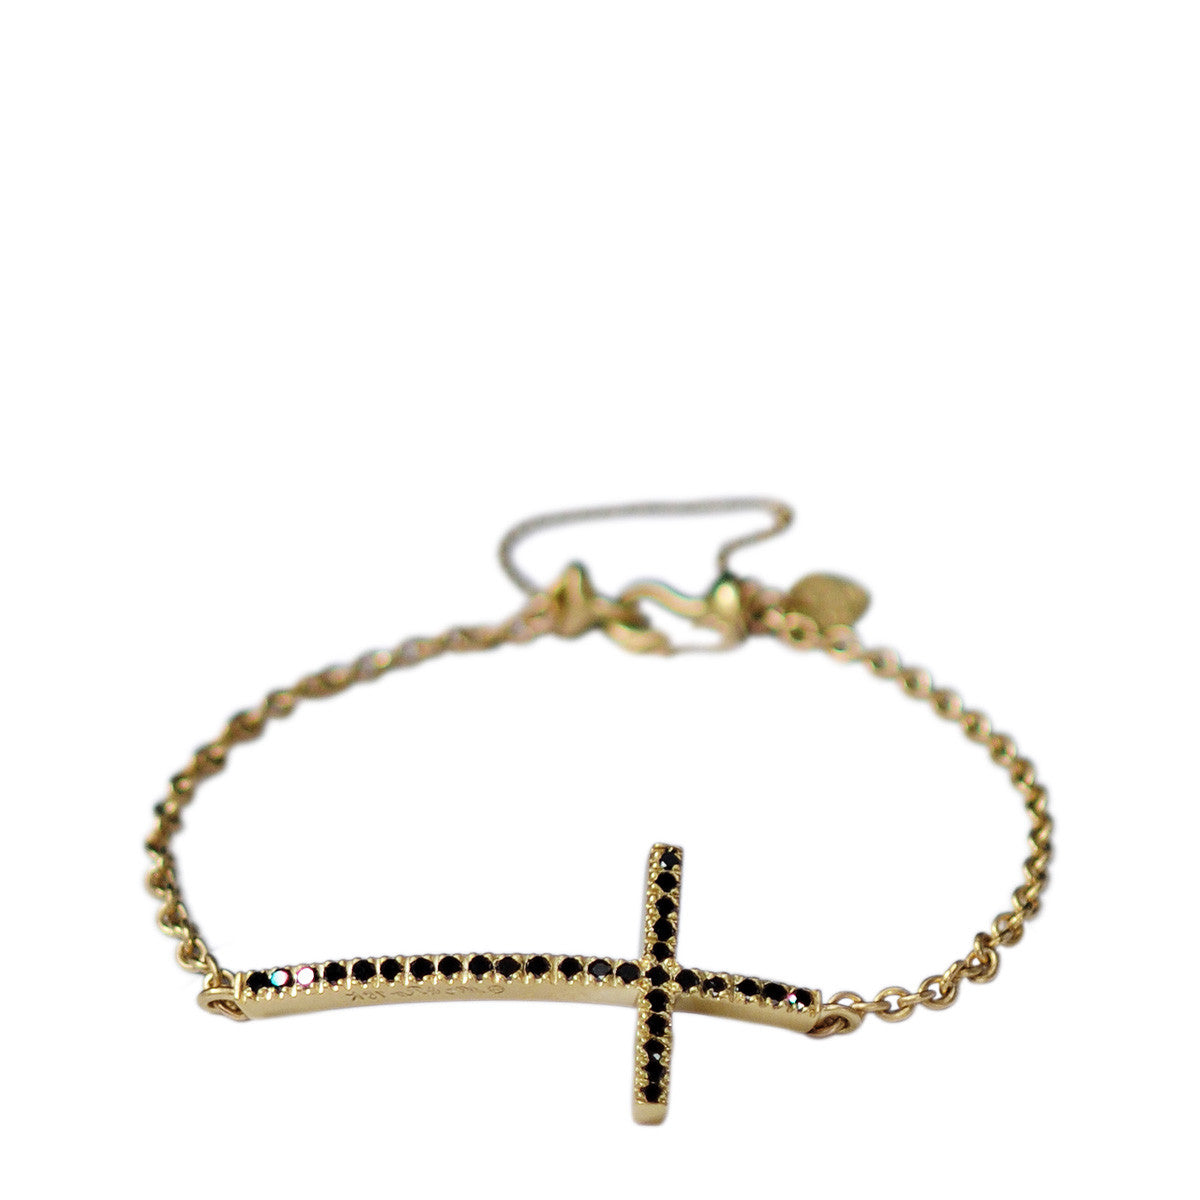 18K Gold Pave Cross Bracelet with Black Diamonds